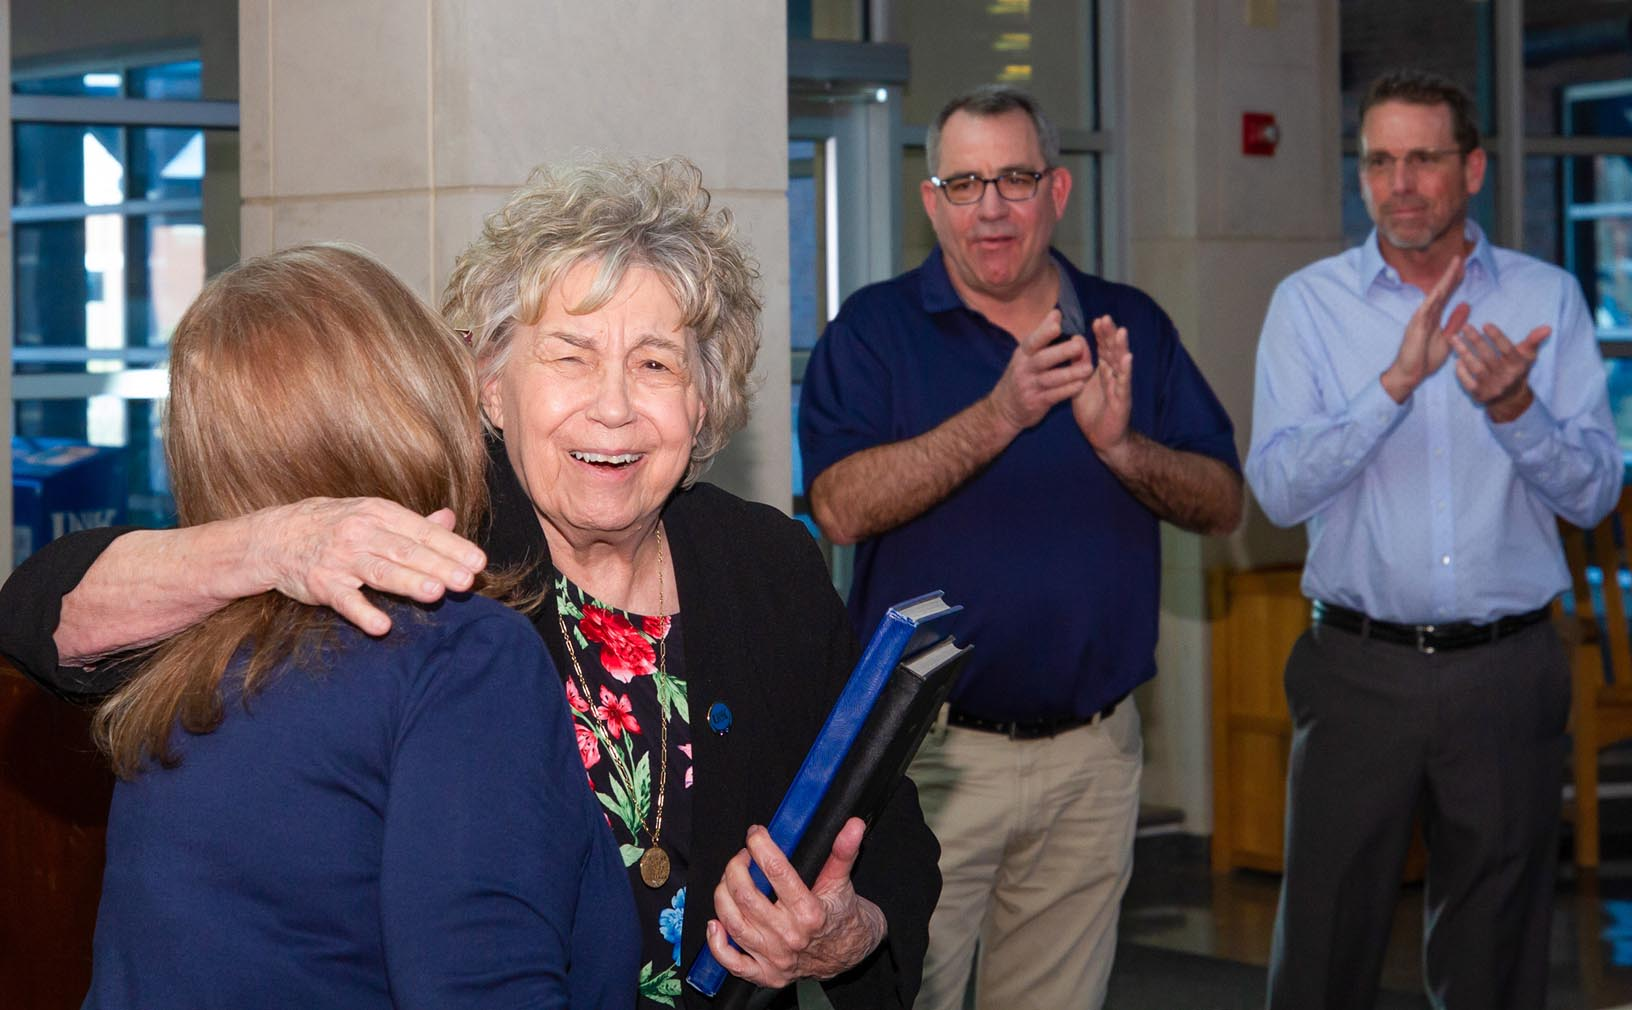 Patricia Hoehner, second from left, a professor of educational administration at UNK, hugs interim College of Education Dean Grace Mims during Friday's dedication of the Hoehner Family Conference Room. (Photos by Chase Harmon, UNK Communications)